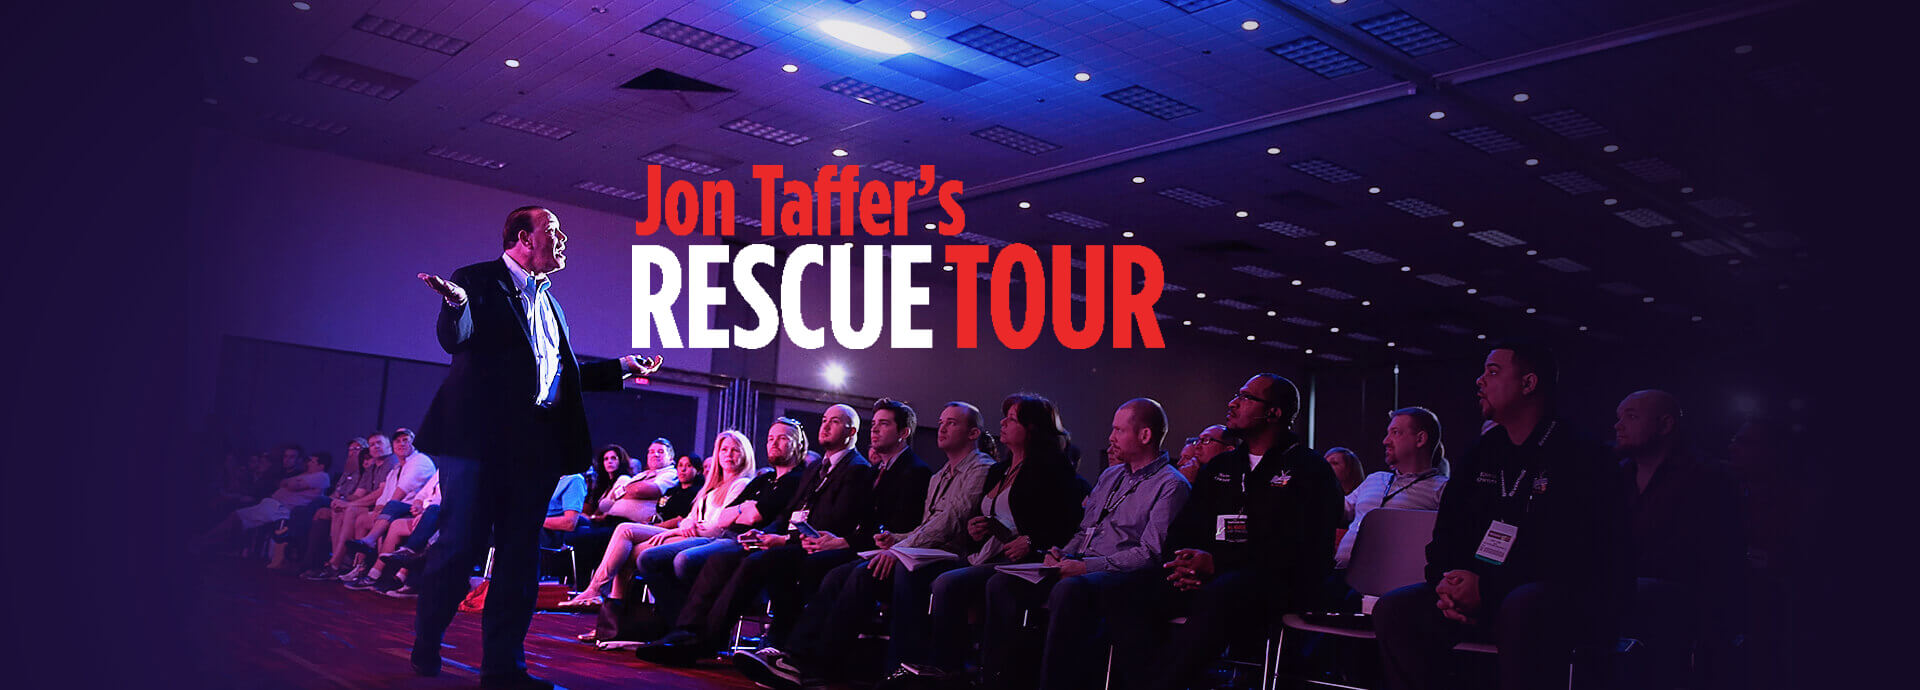 Jon Taffer and TouchTunes partner for Rescue Tour - What's Shakin' week of June 19